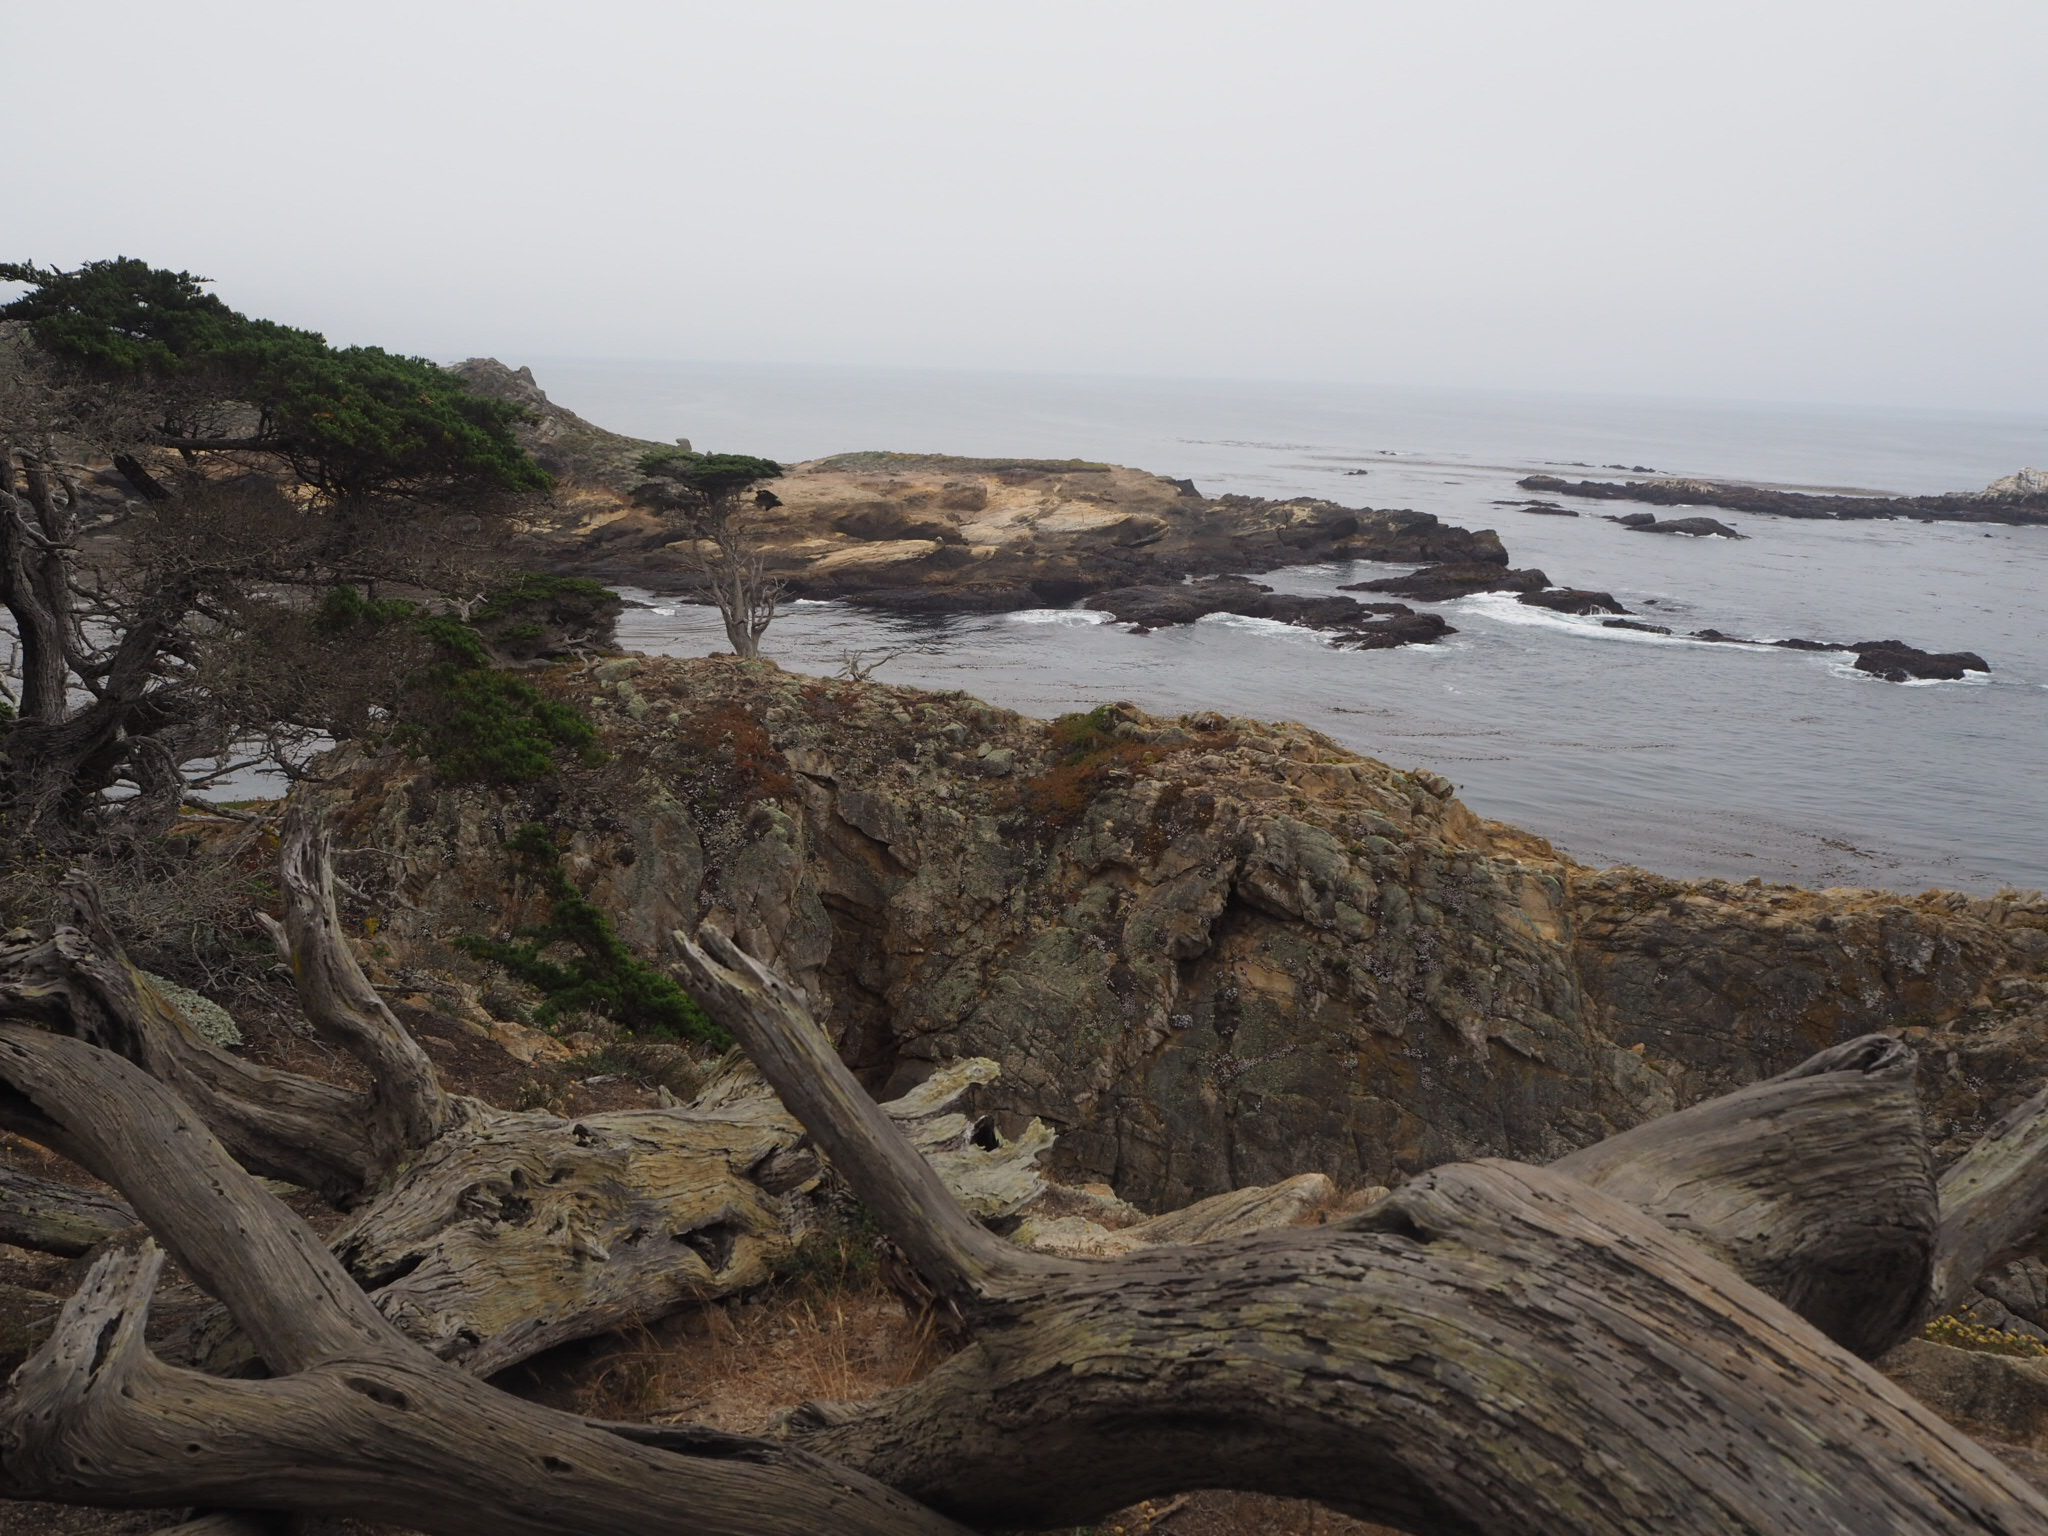 Point Lobos State Reserve, Pacific Coast Highway, California